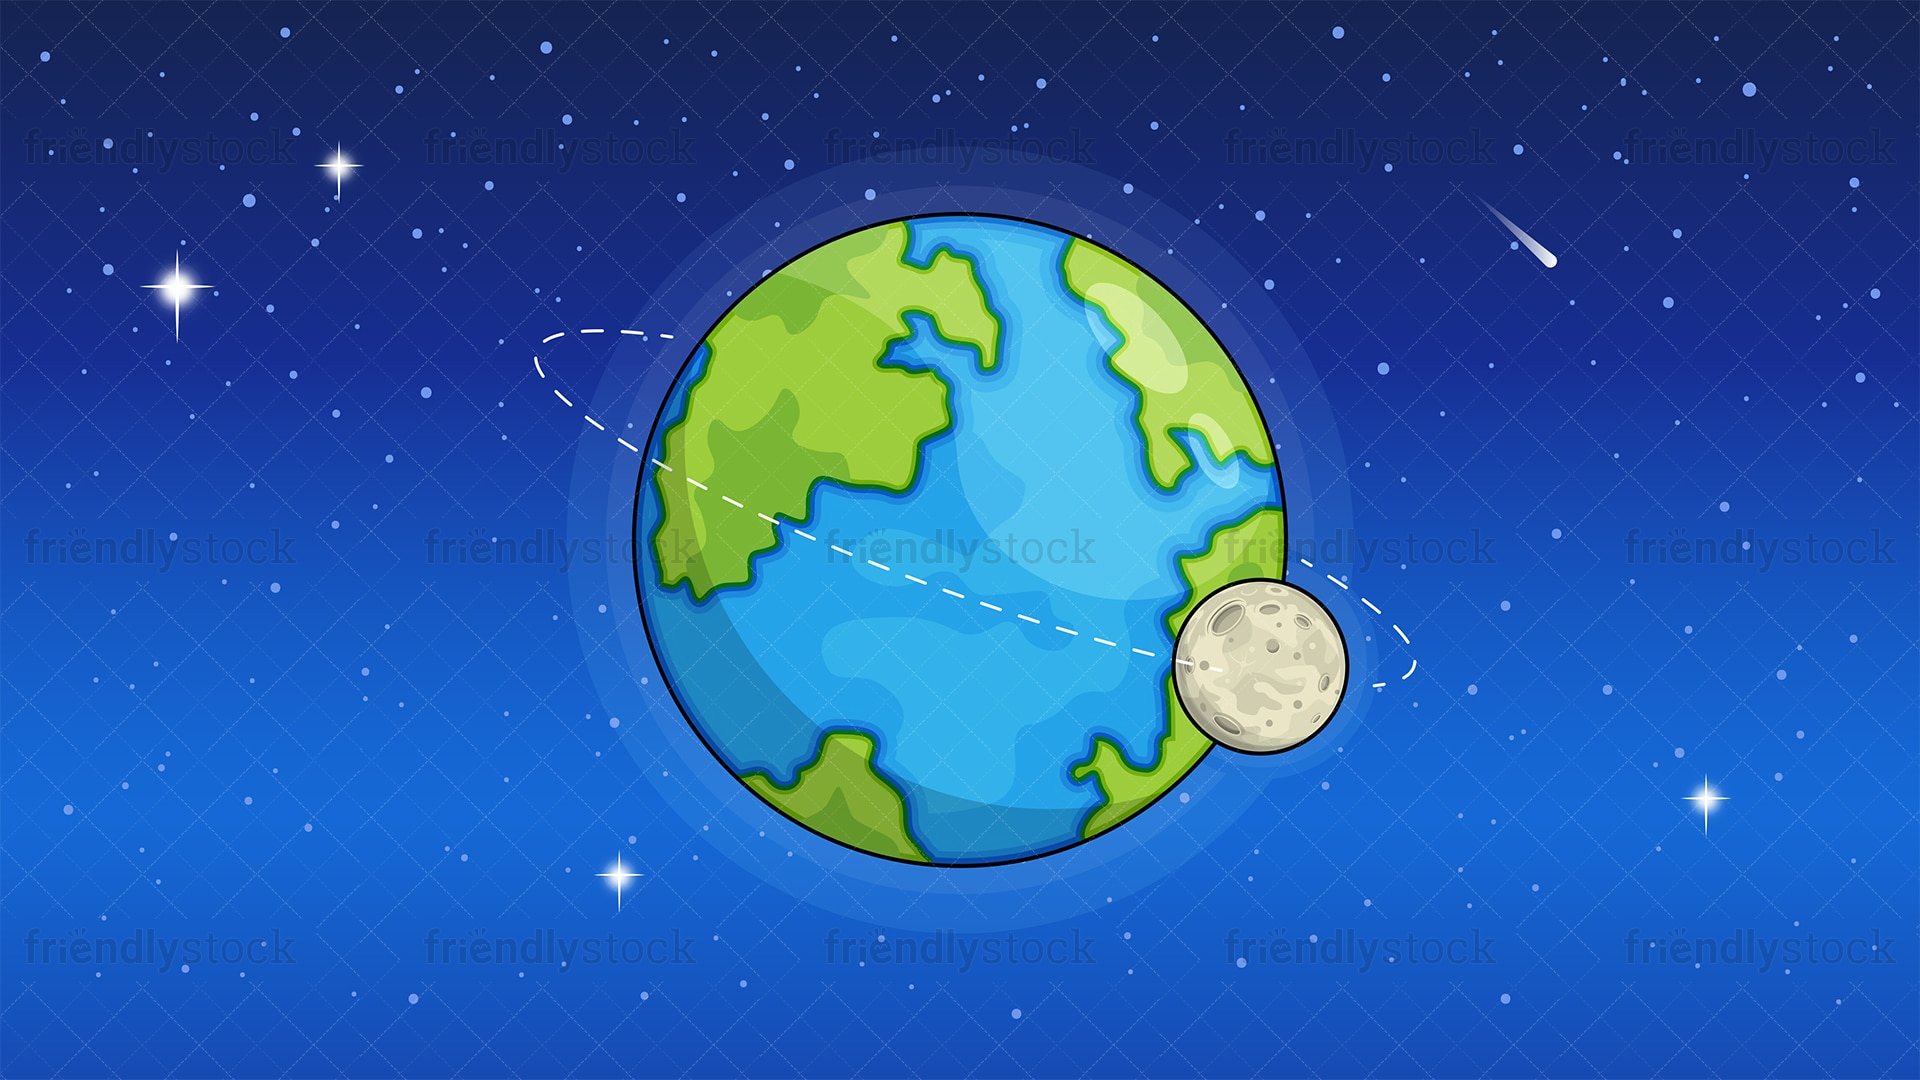 Earth From Space Background Cartoon Clipart Vector - FriendlyStock